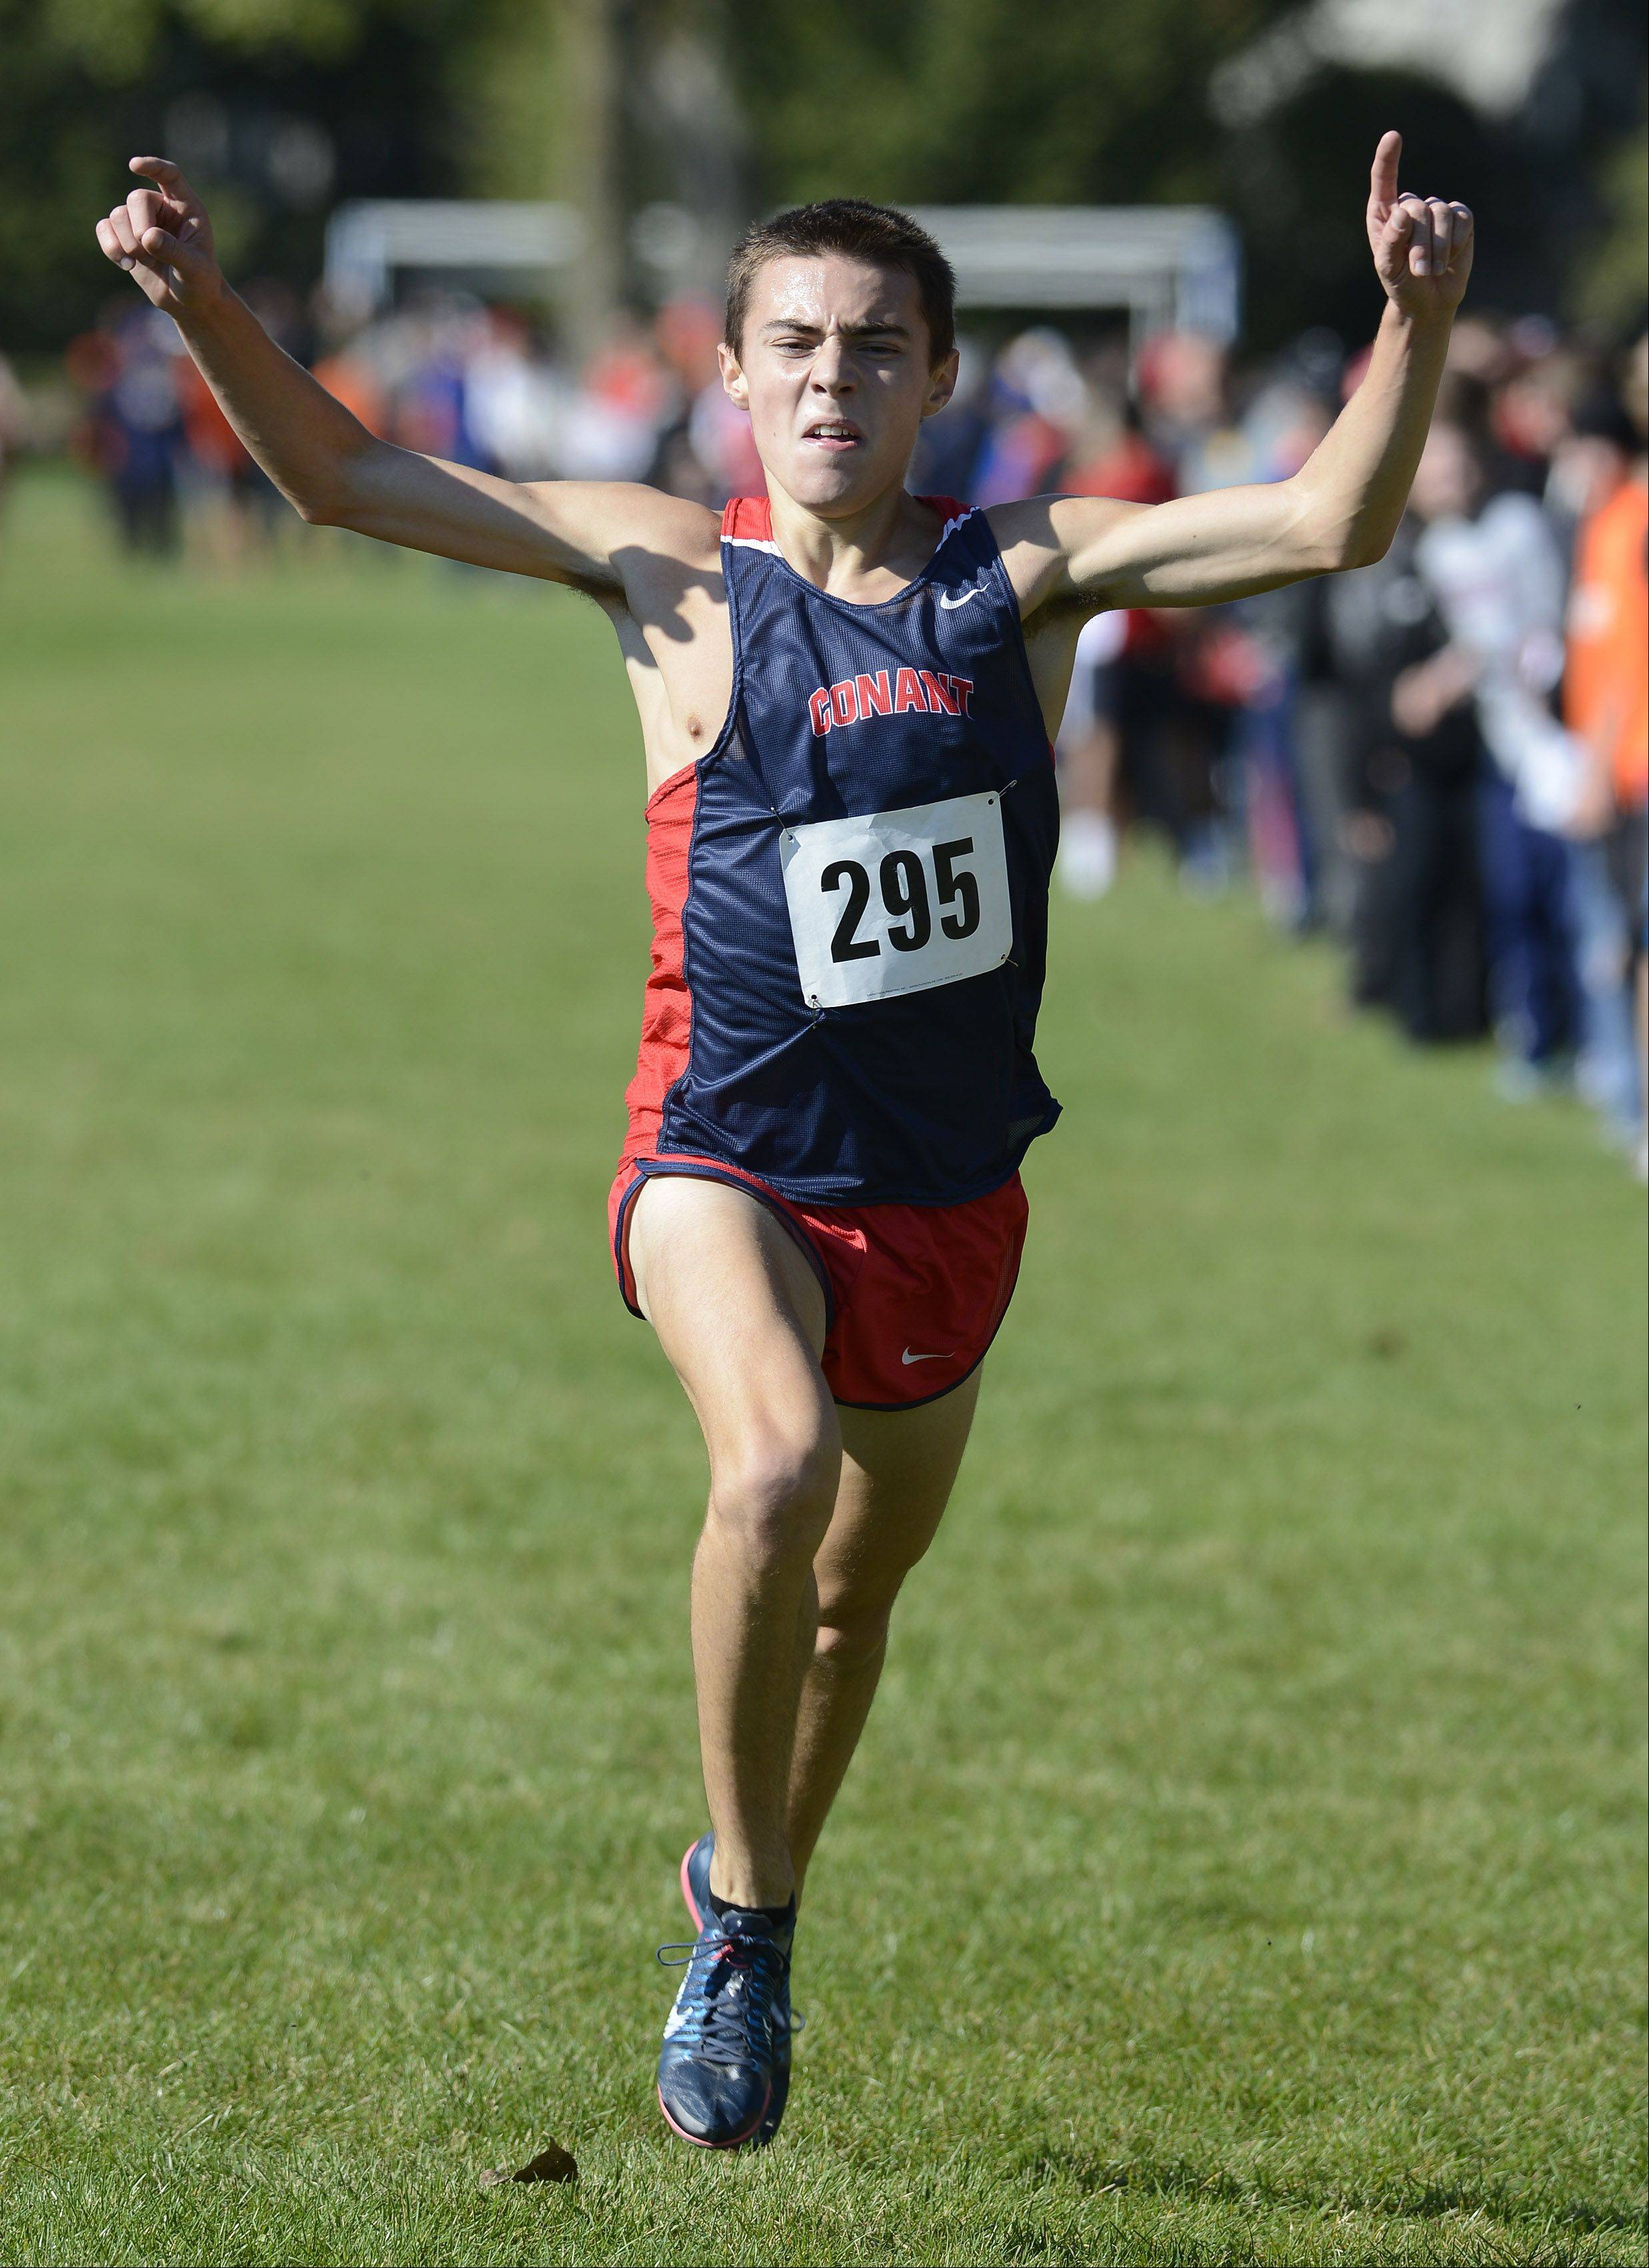 Conant's Zach Dale celebrates as he wins the boys race during the Mid-Suburban League cross country meet at Willow Stream Park in Buffalo Grove on Saturday.